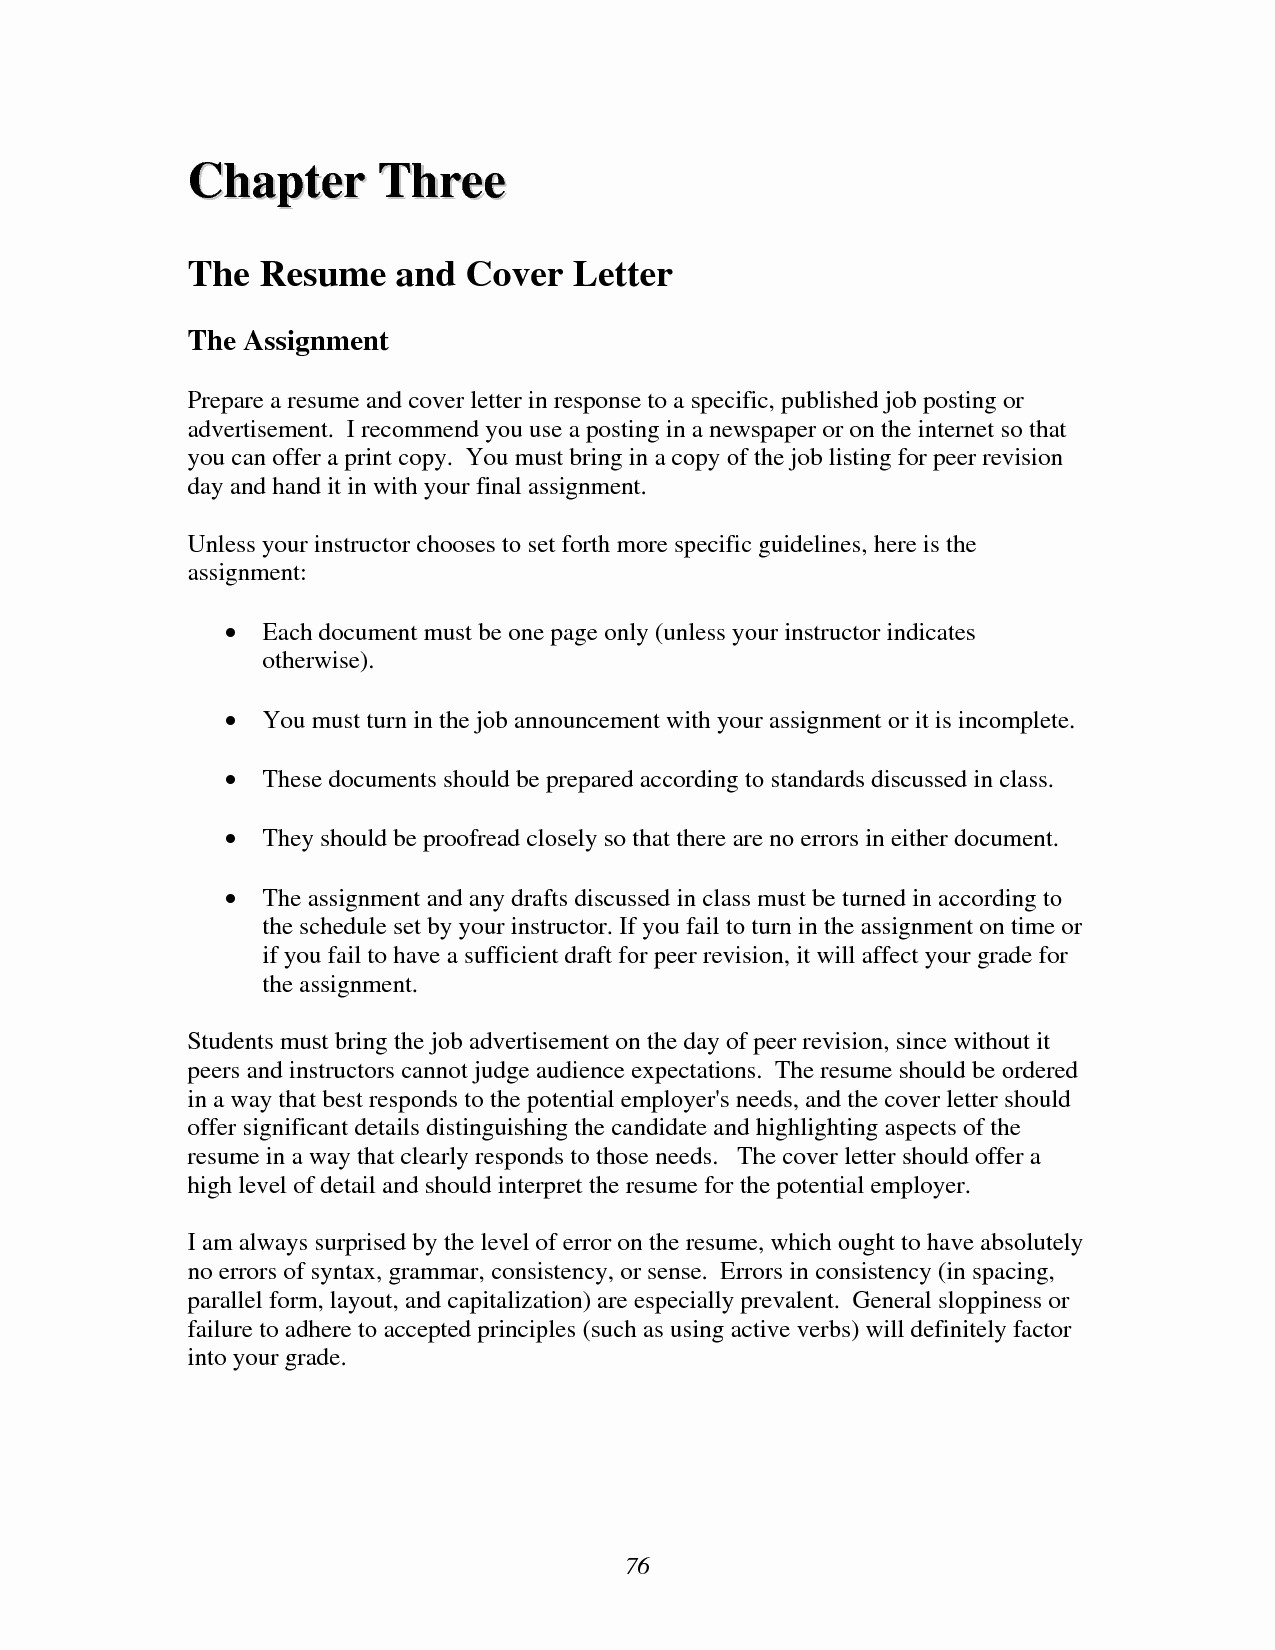 Cover Letter Template for Receptionist - Resume Cover Letter Examples for Hairstylist